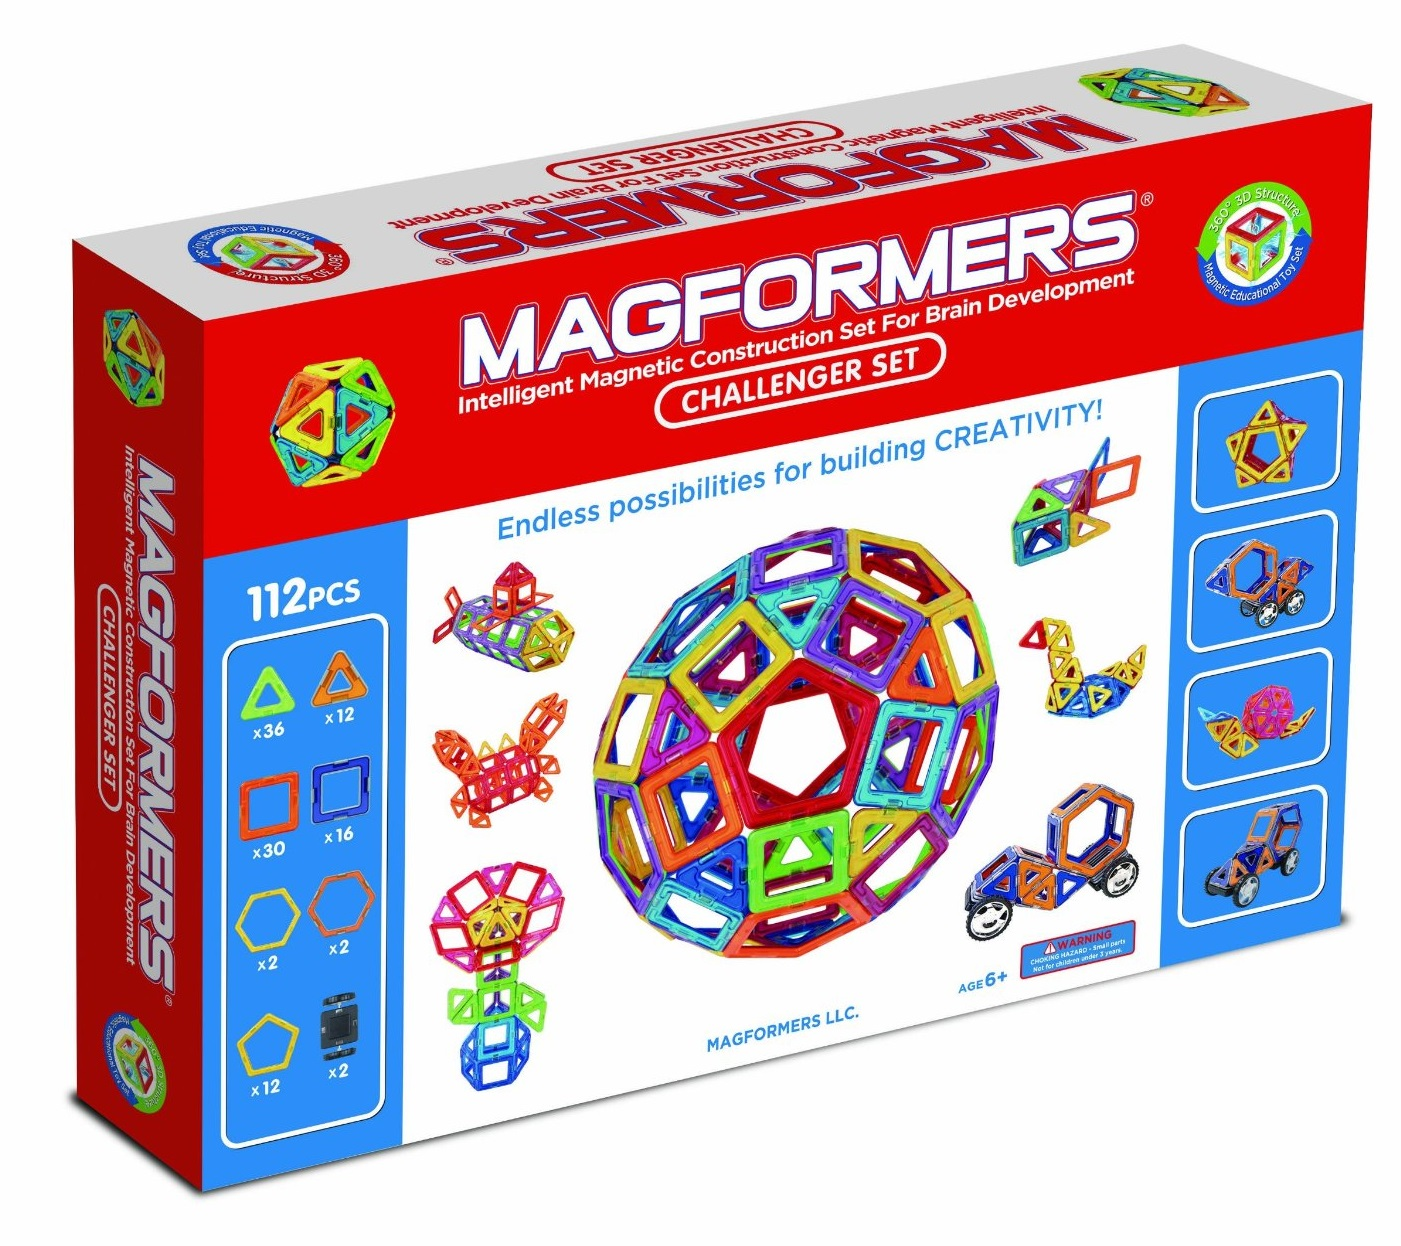 For the Magformers 112 Challenger set, it comes with the following ...